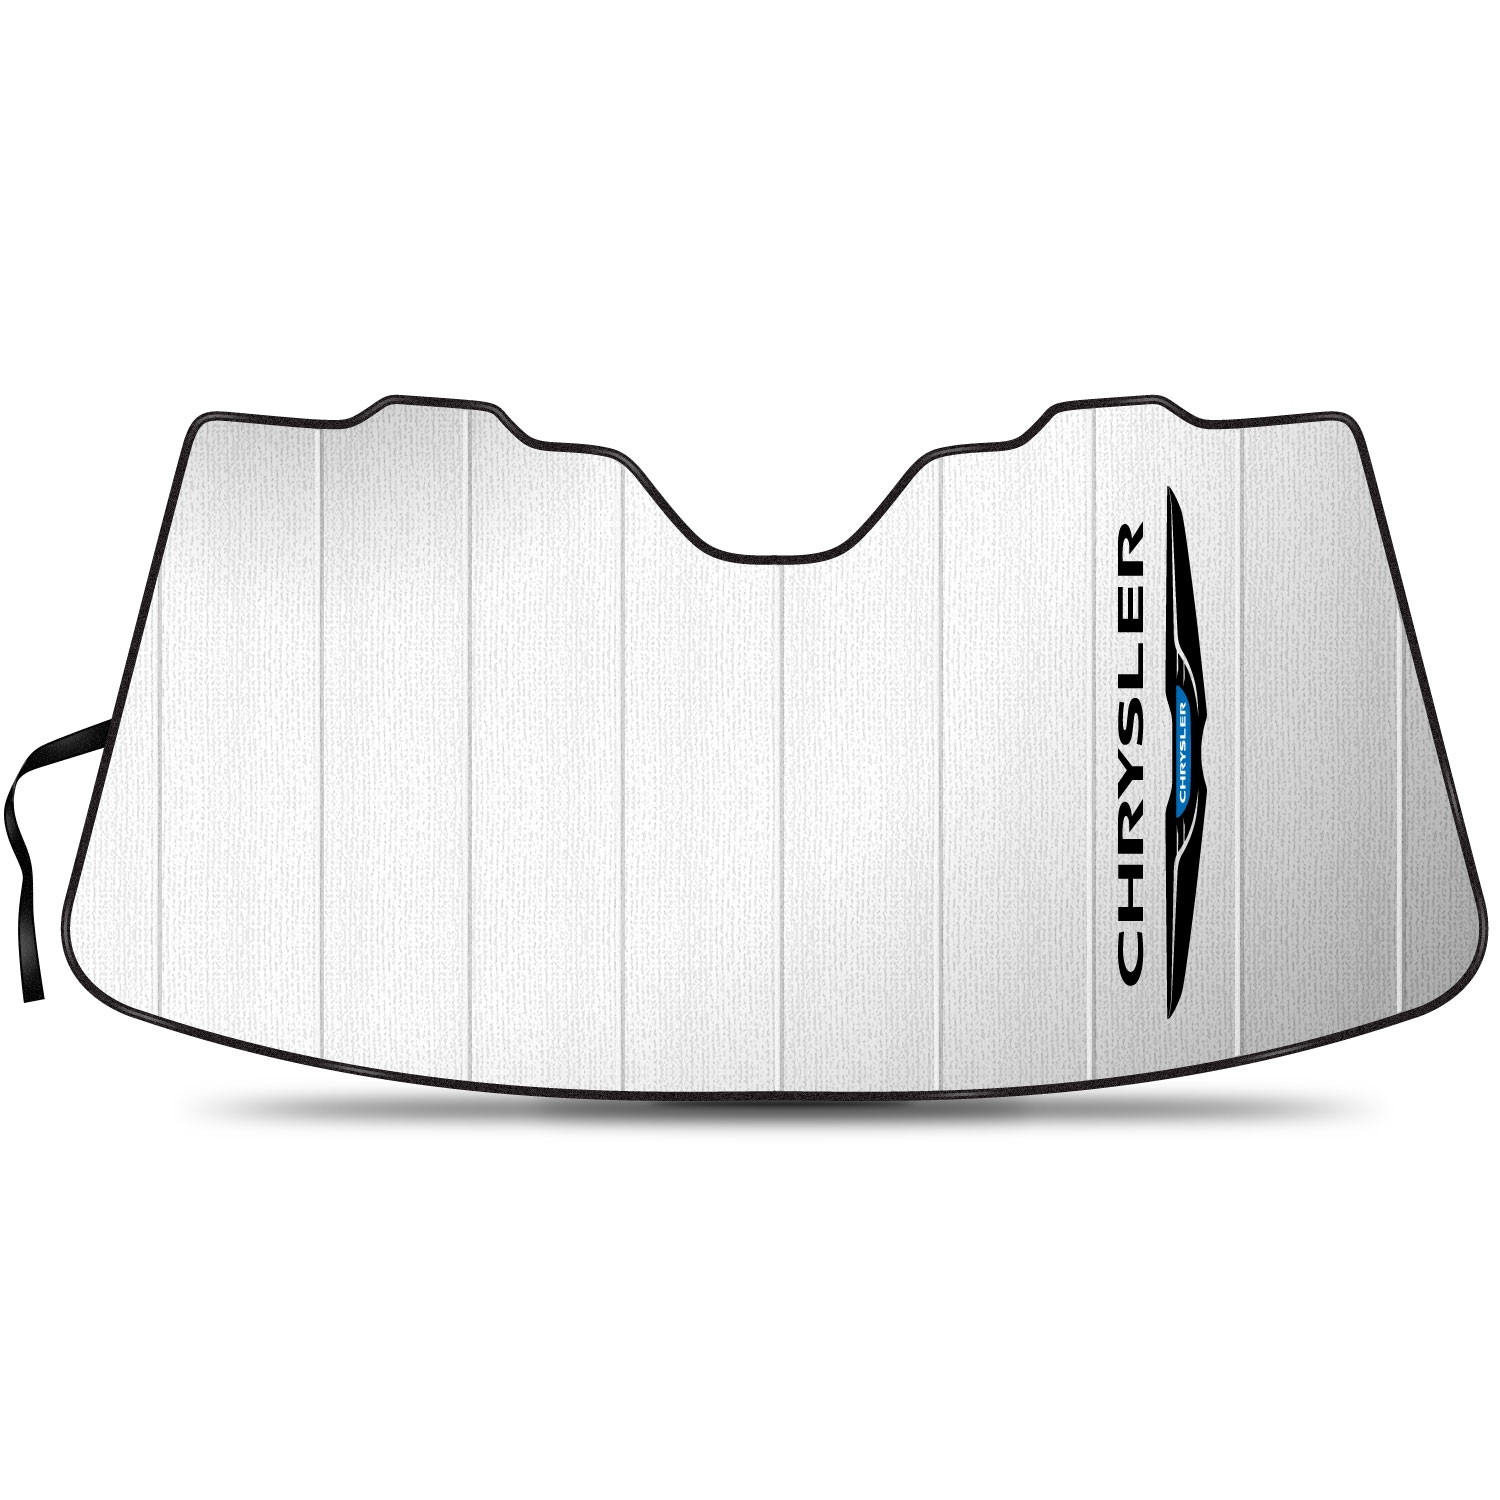 """Chrysler Logo 55-1/2""""x 27"""" Stand Up Universal Fit Auto Windshield Sun Shade"""